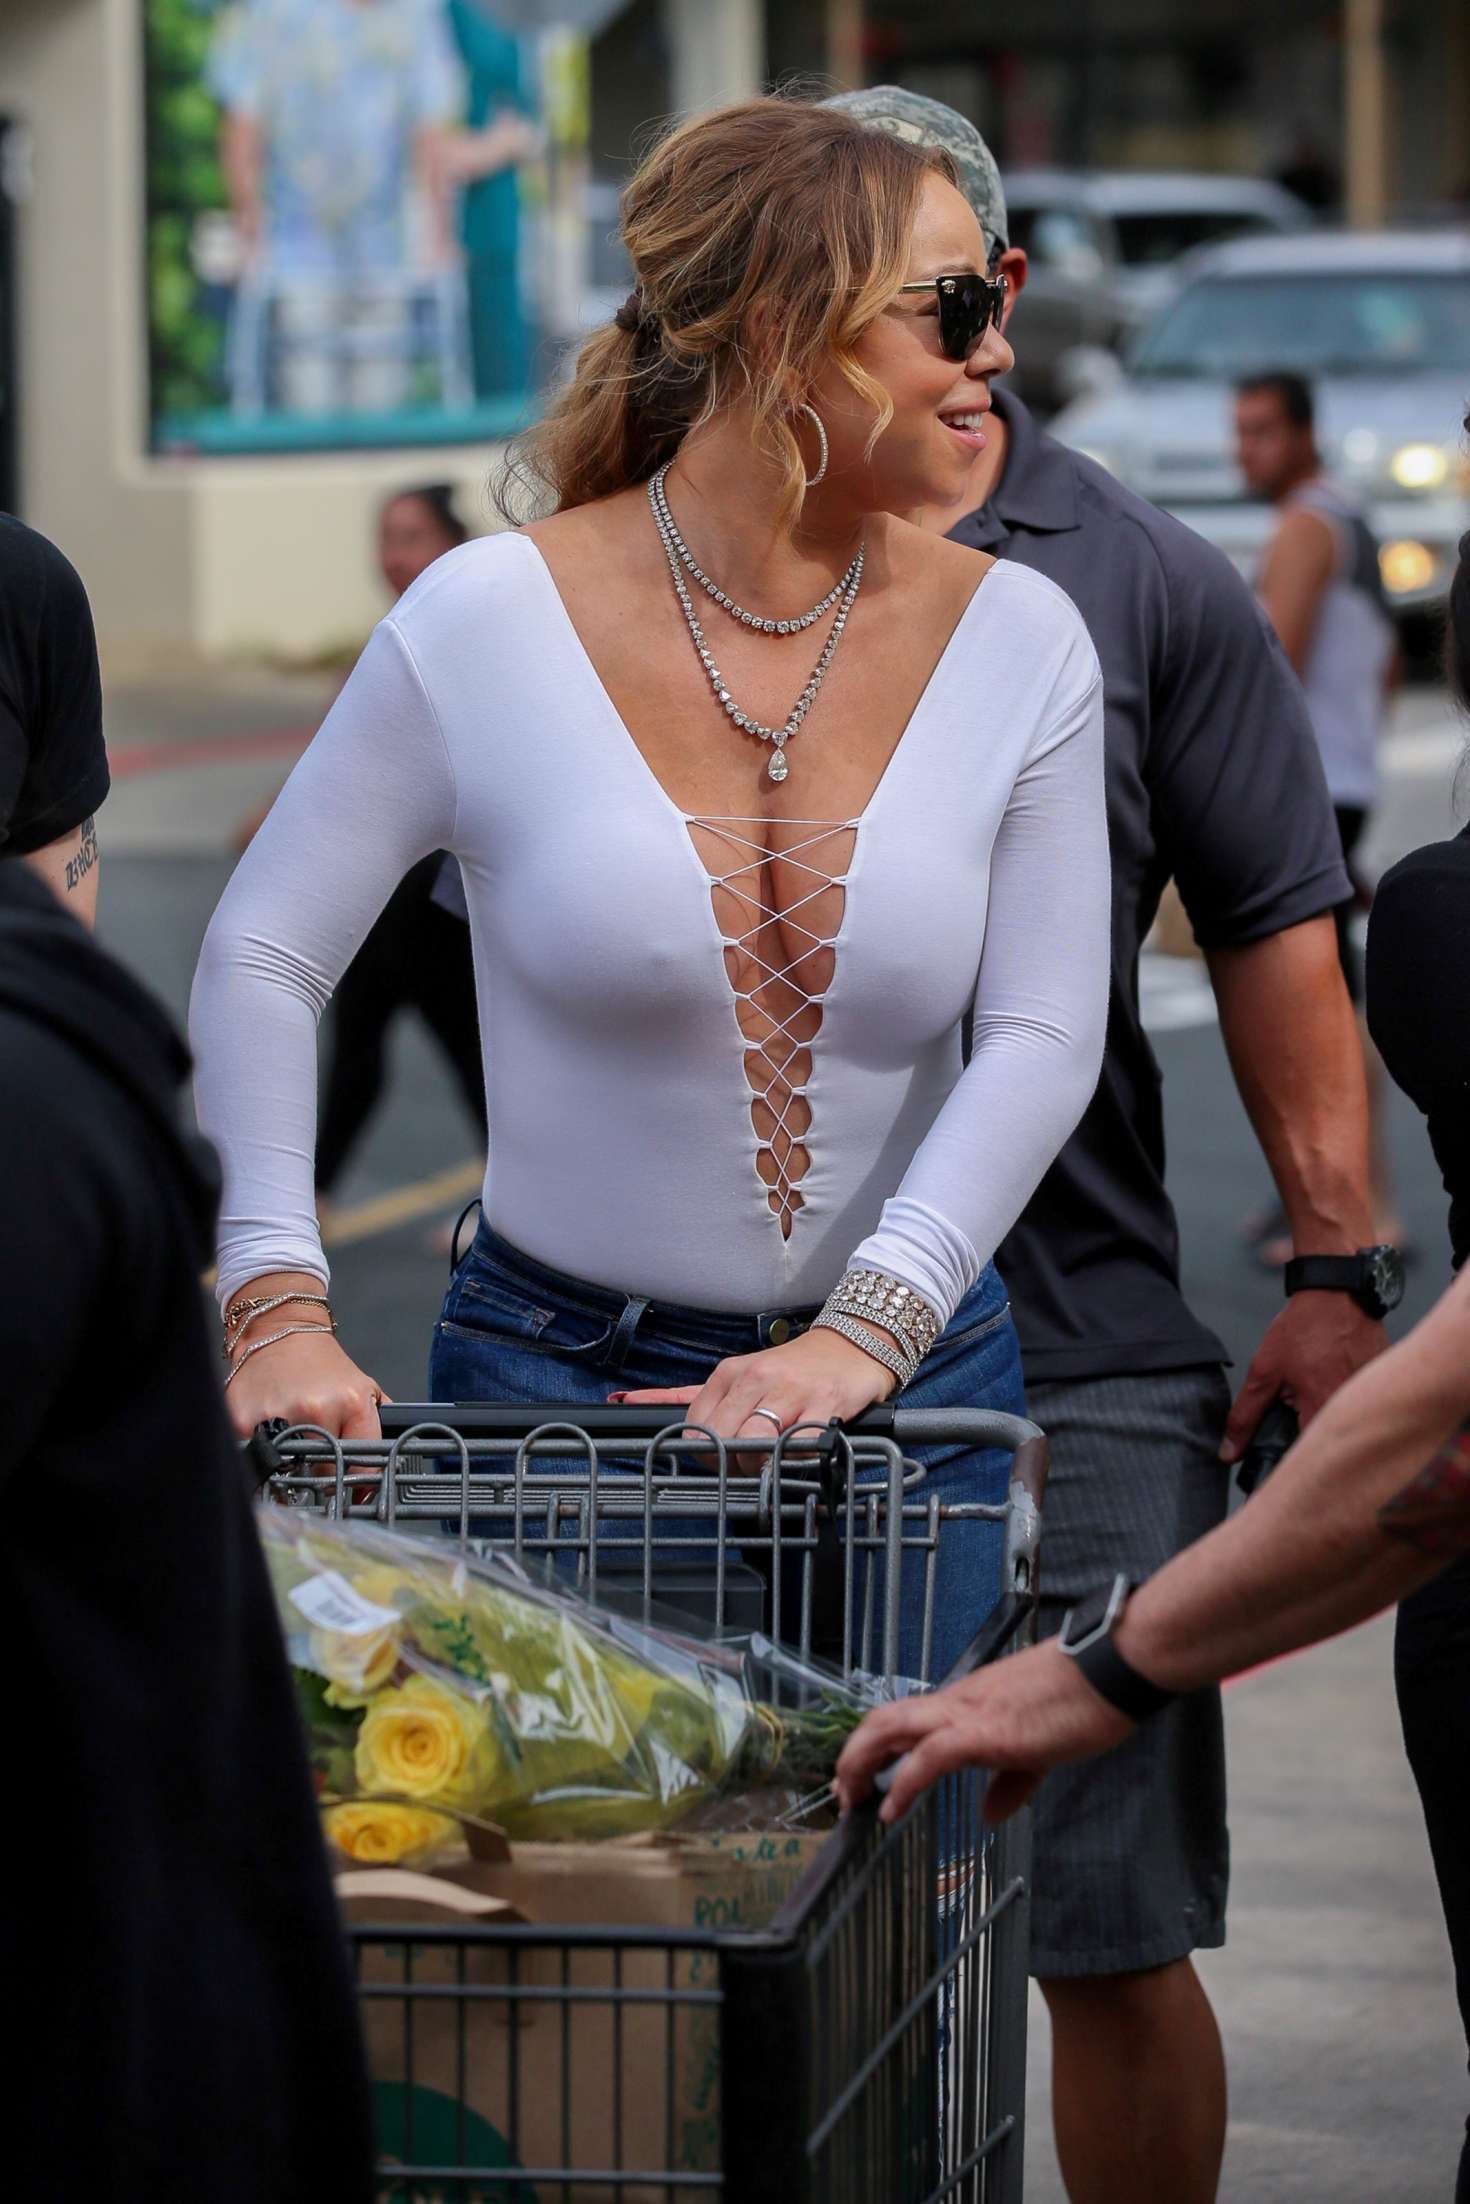 Tits On The Street